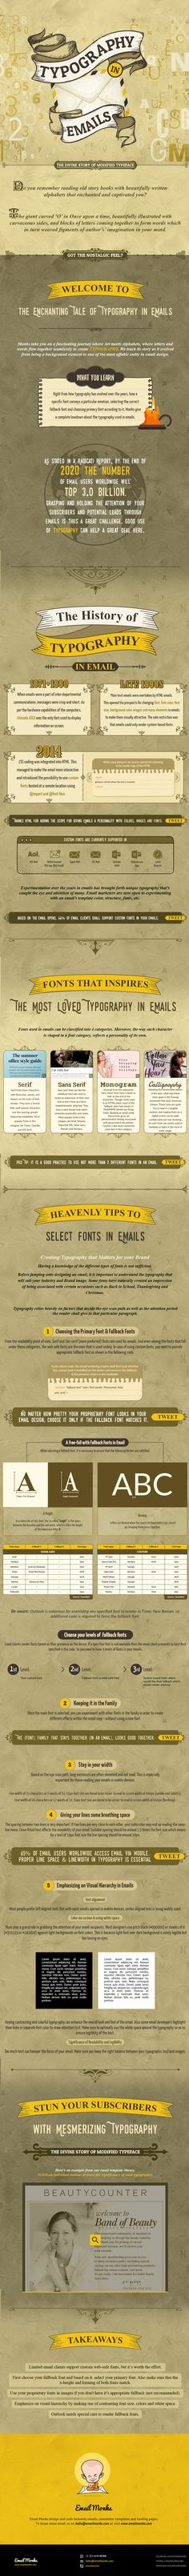 The Importance of Email Typography [Infographic] | Social Media Today